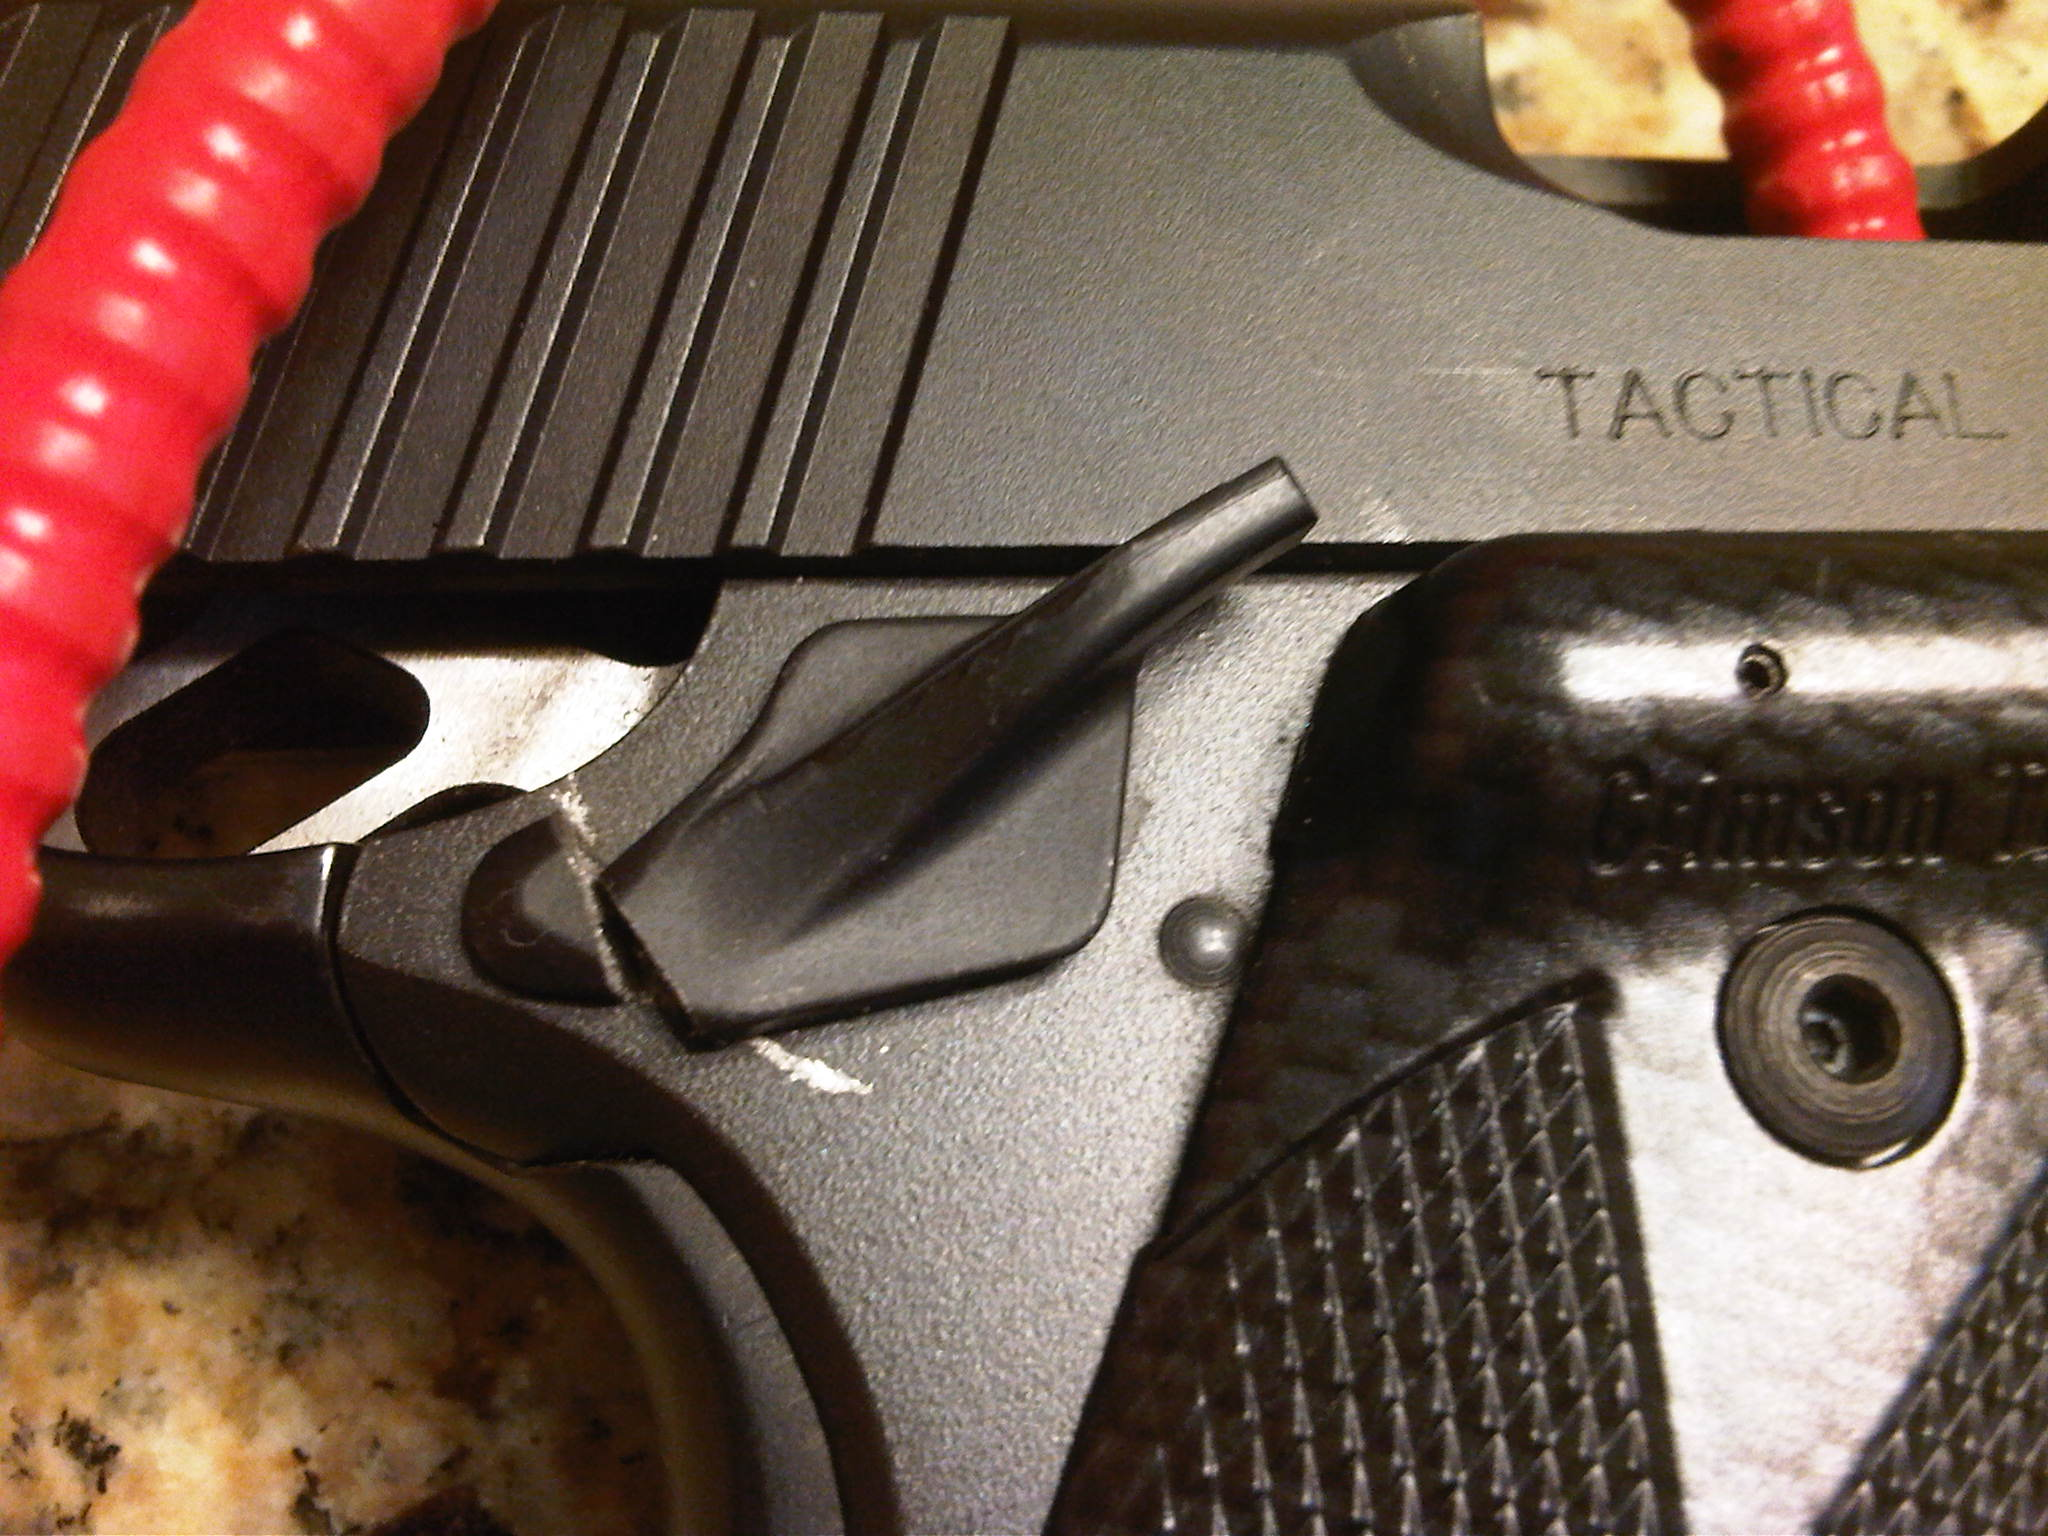 Broken Kimber right side bobbed safety-safety-broken.jpg